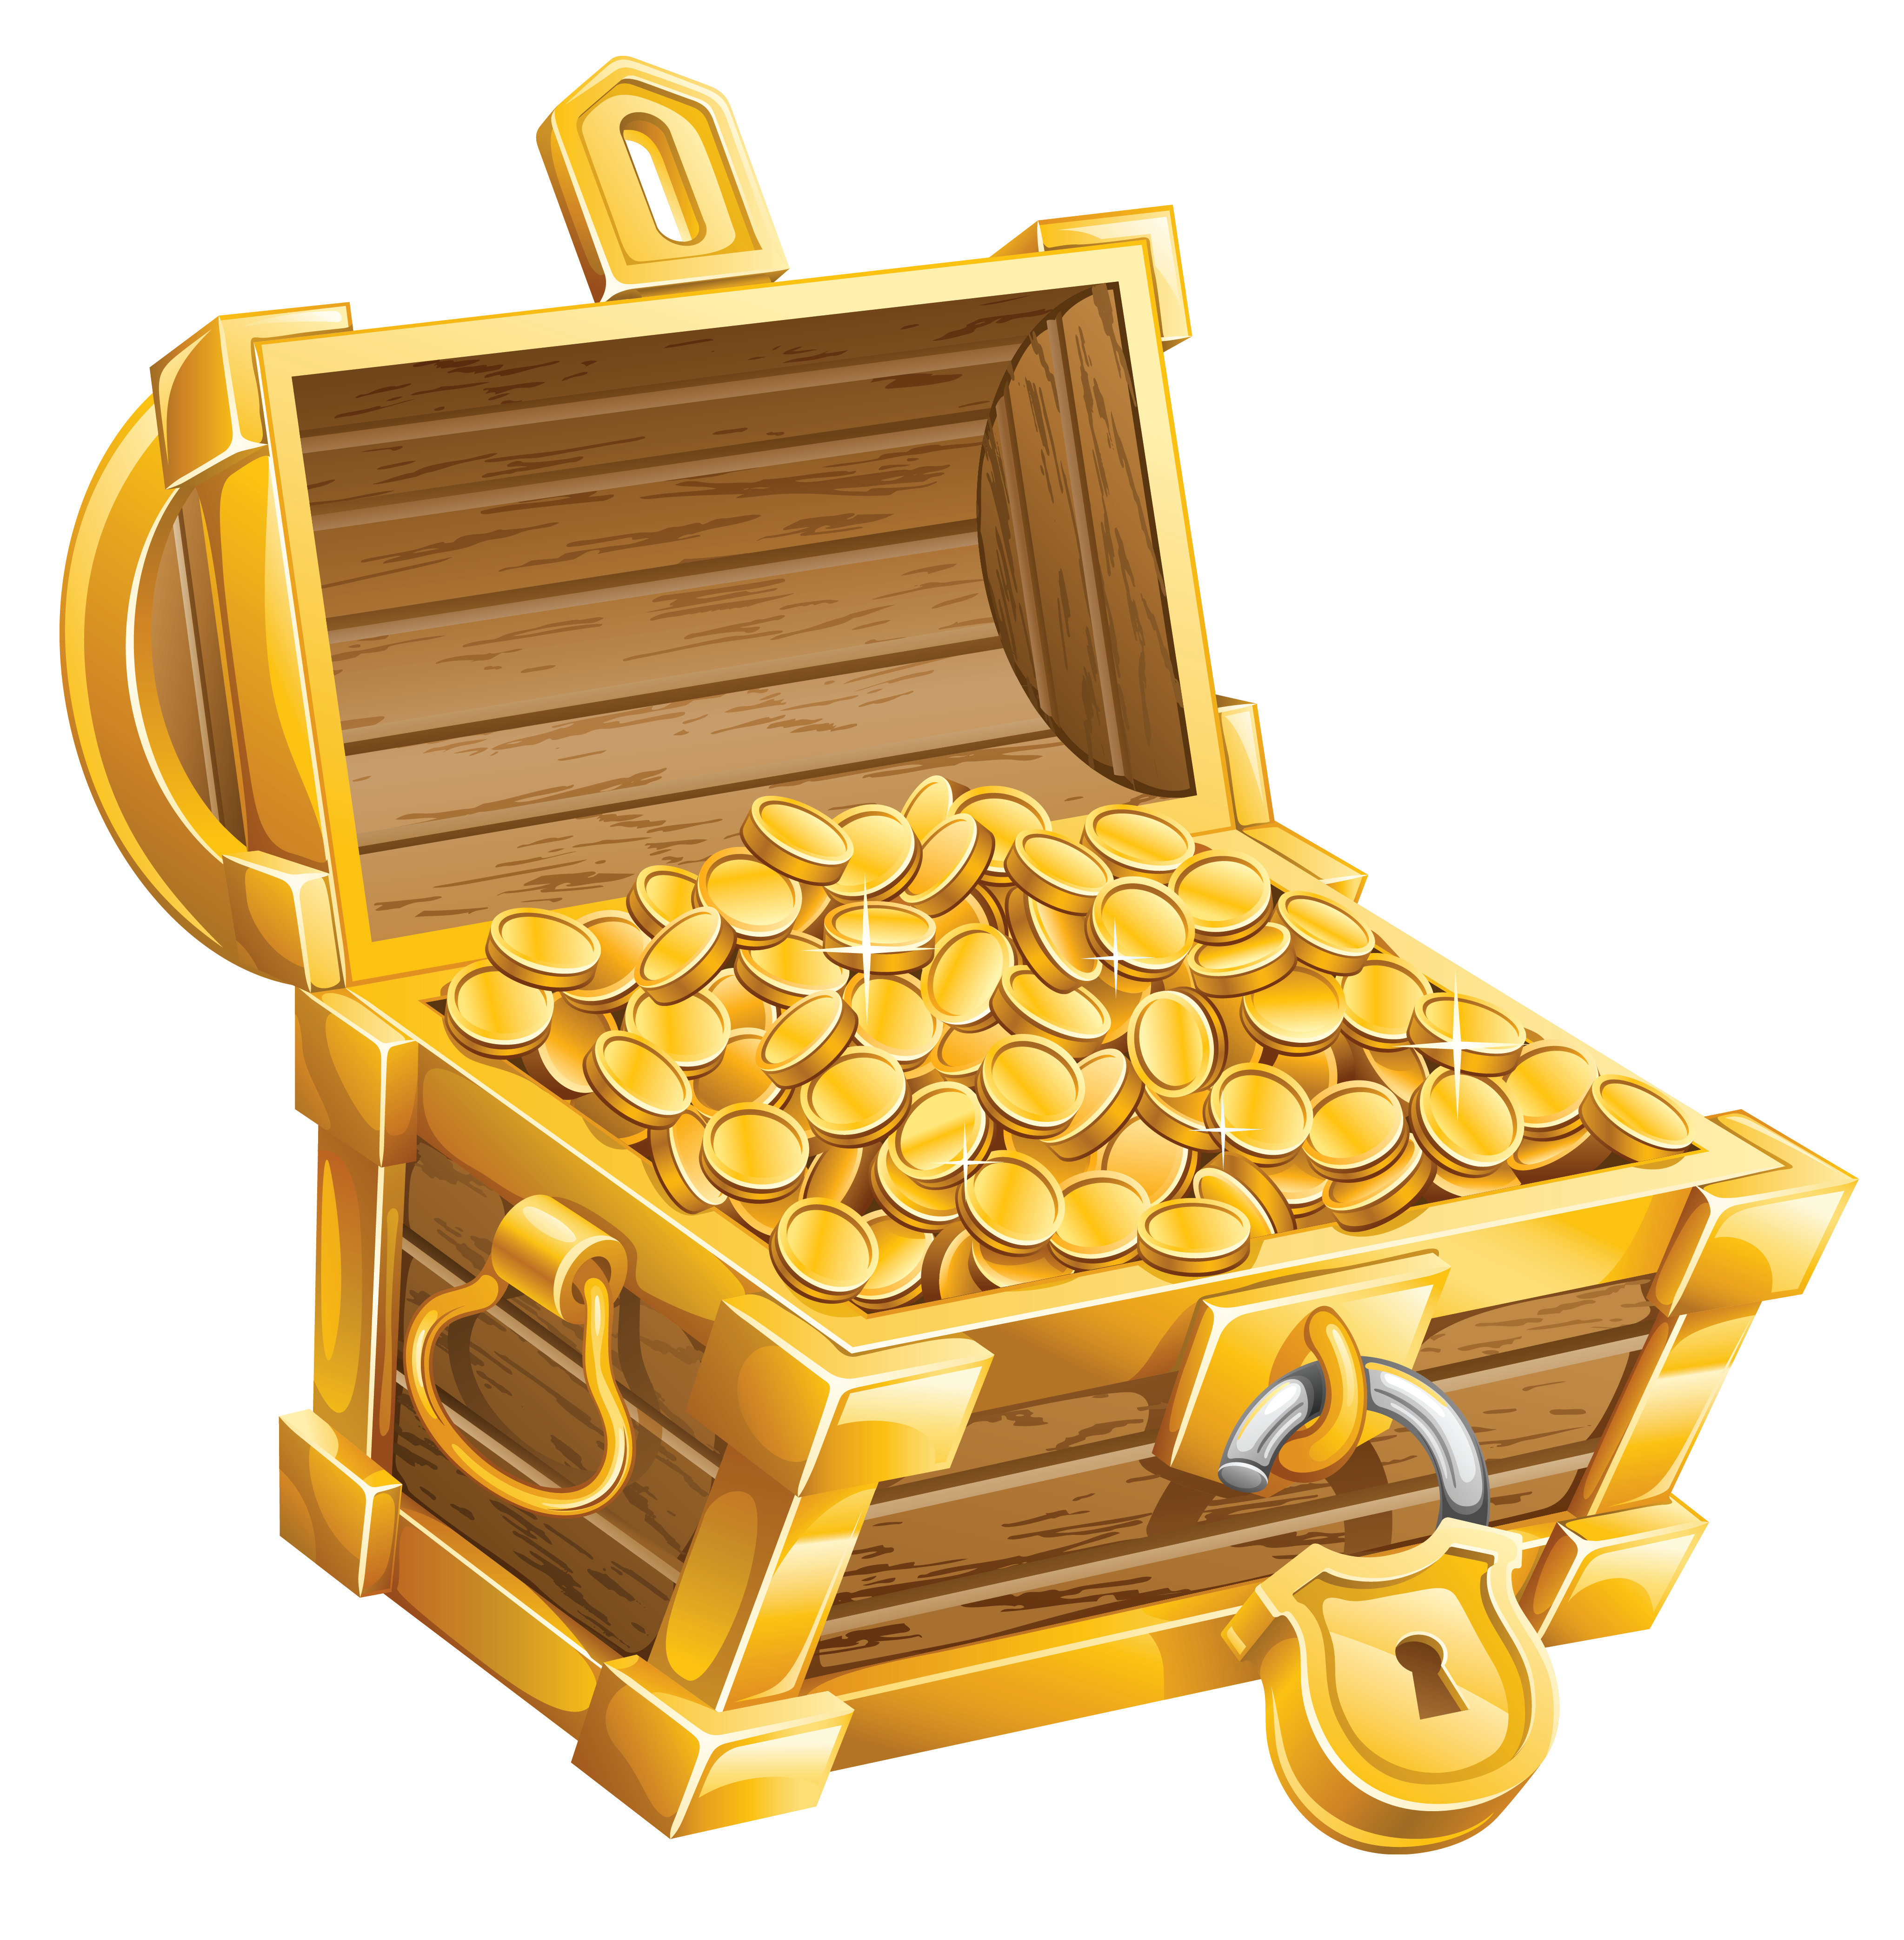 Gold chest png. Buried treasure clip art